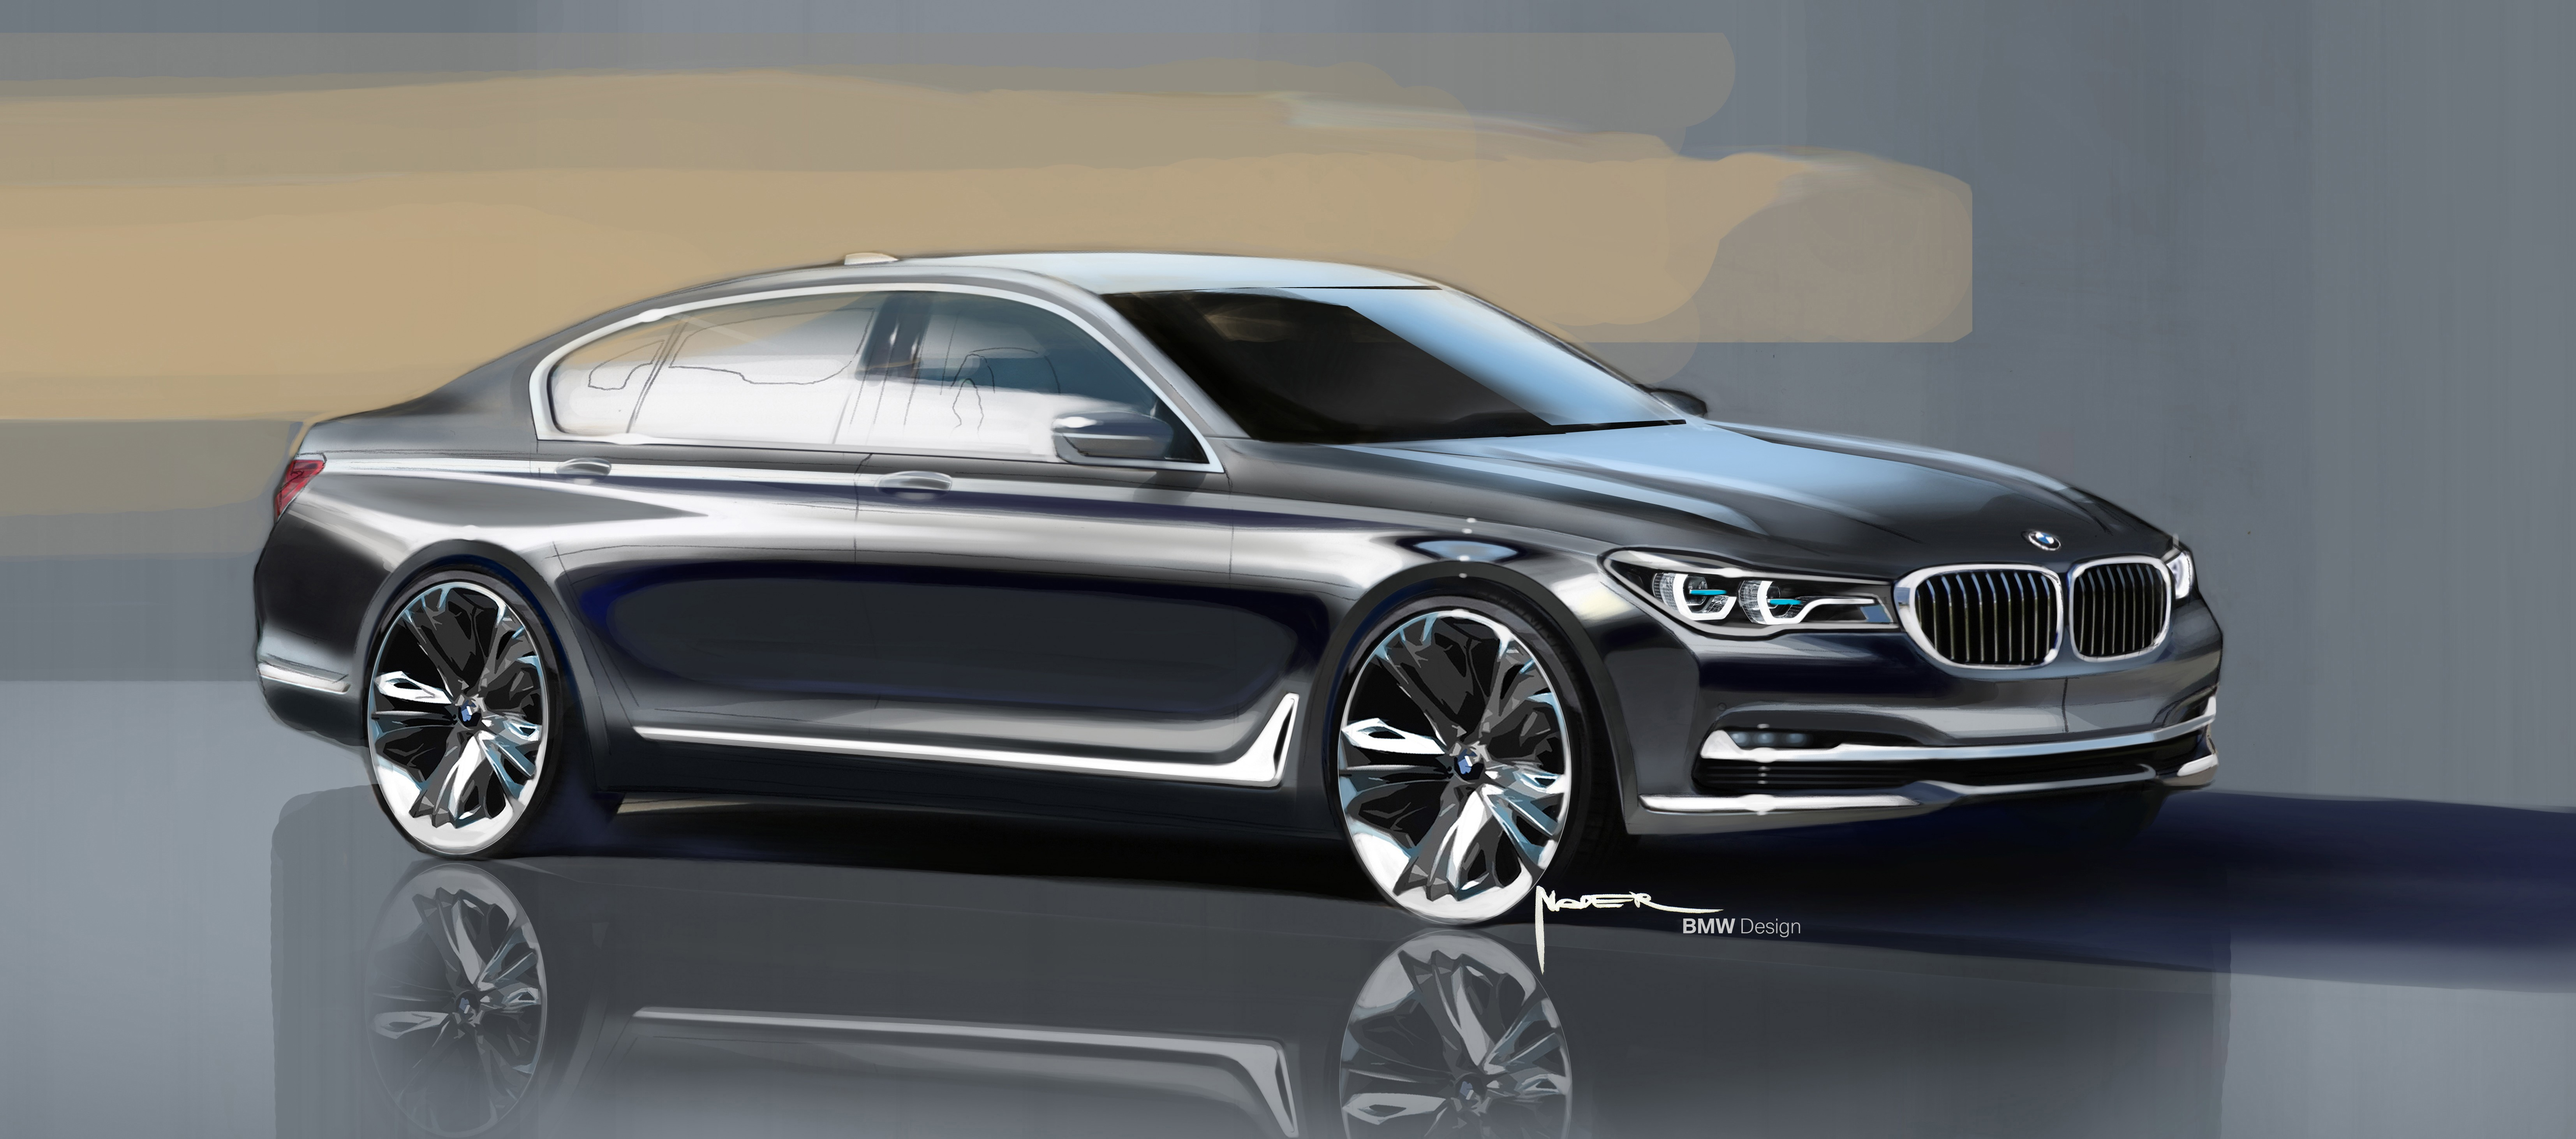 2016 BMW 7 Series Design Sketch